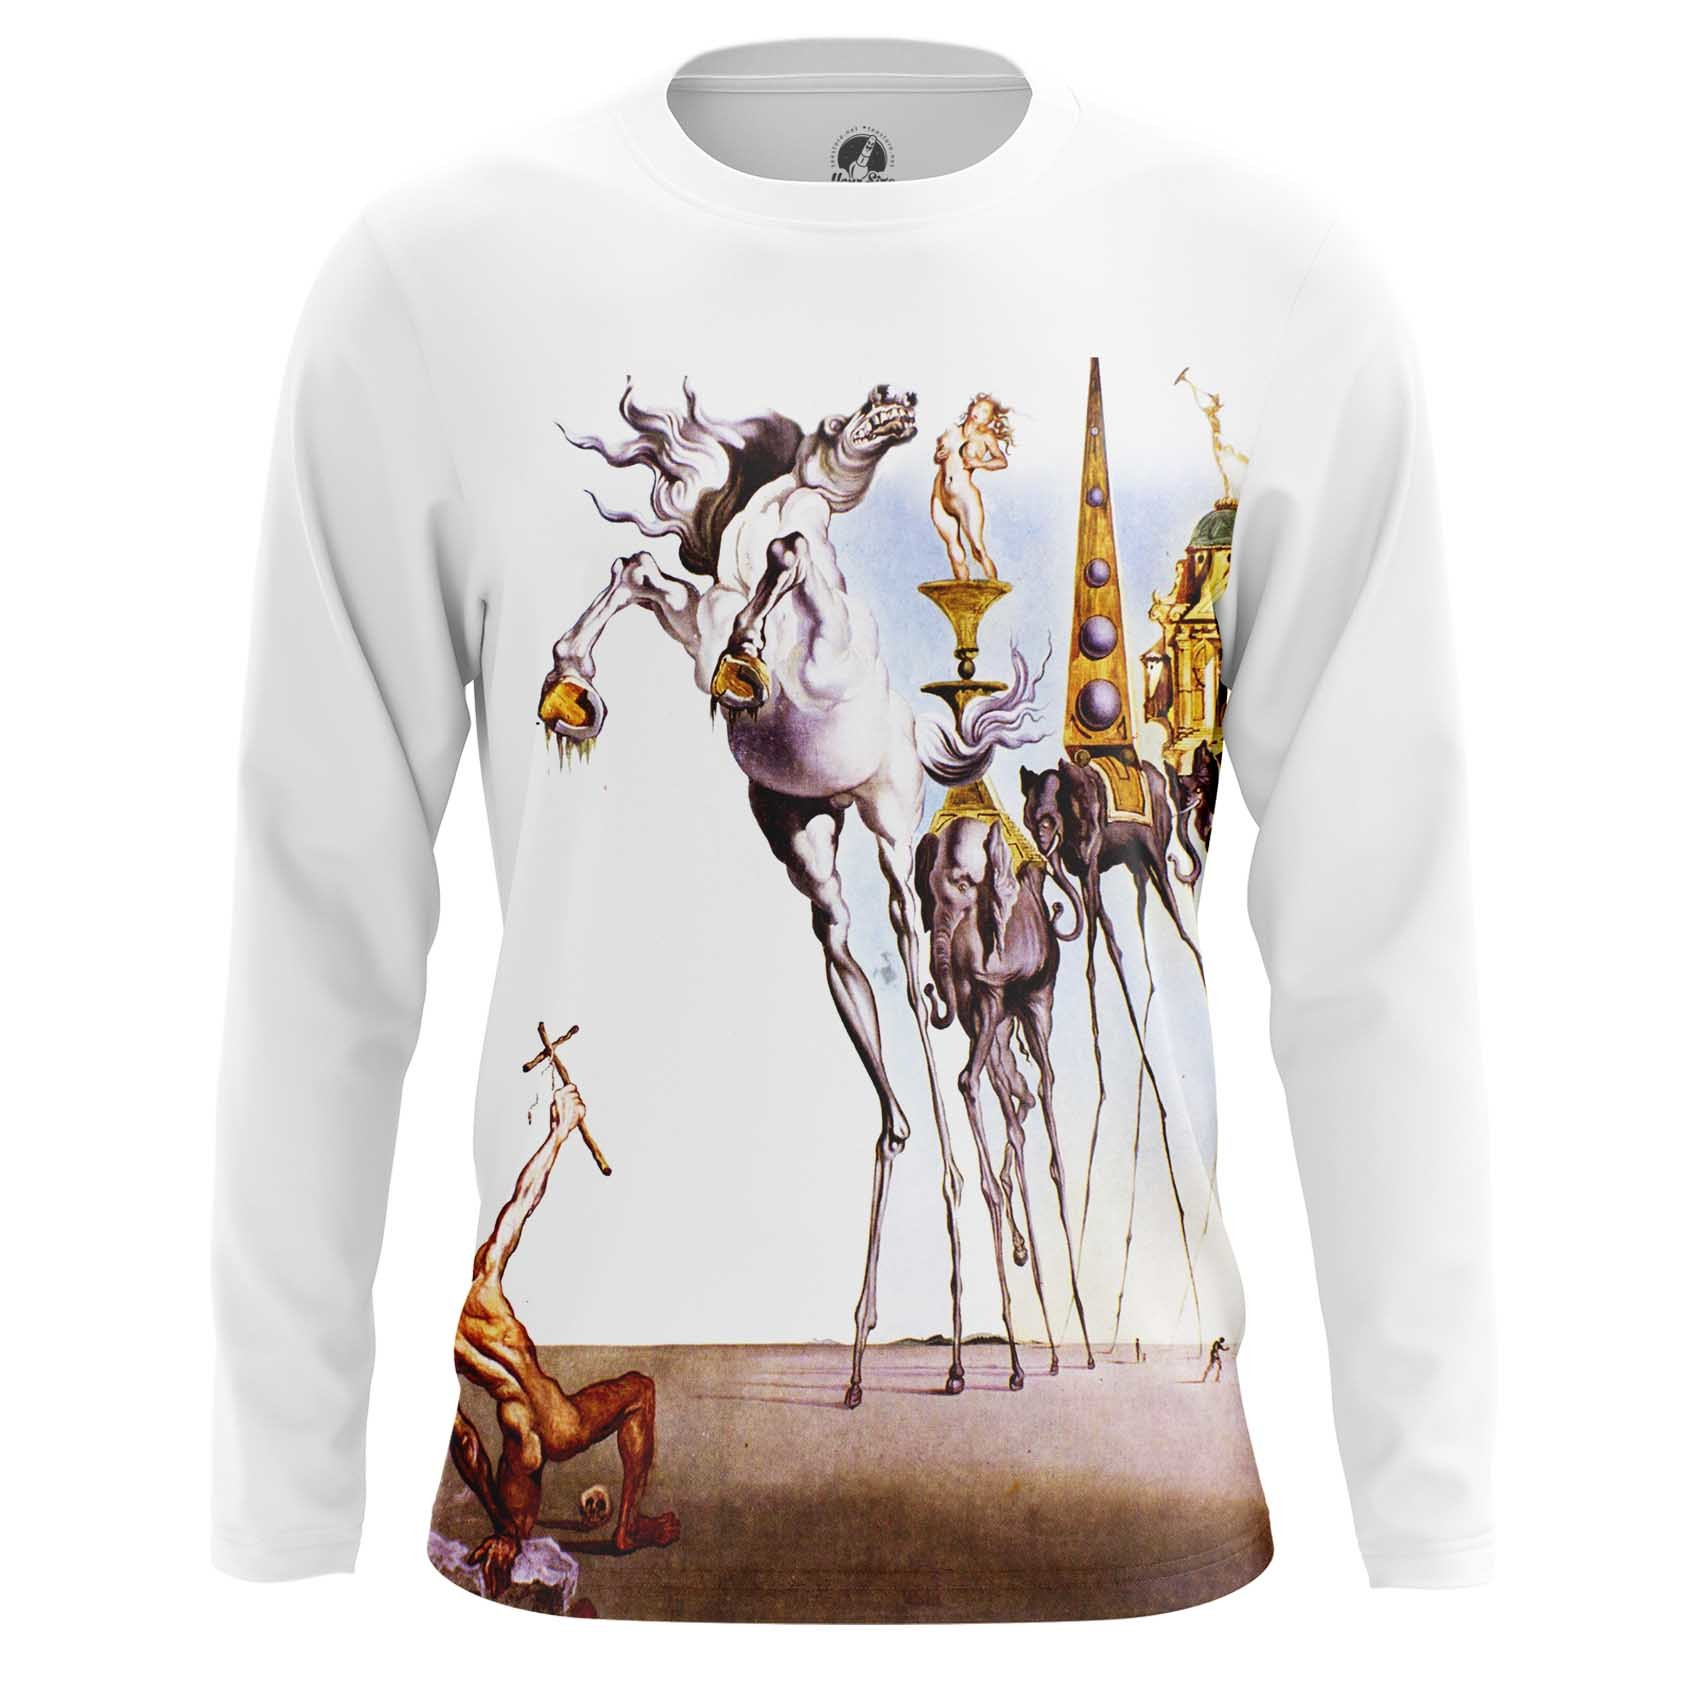 Collectibles T-Shirt Temptation Of St. Anthony Salvador Dali